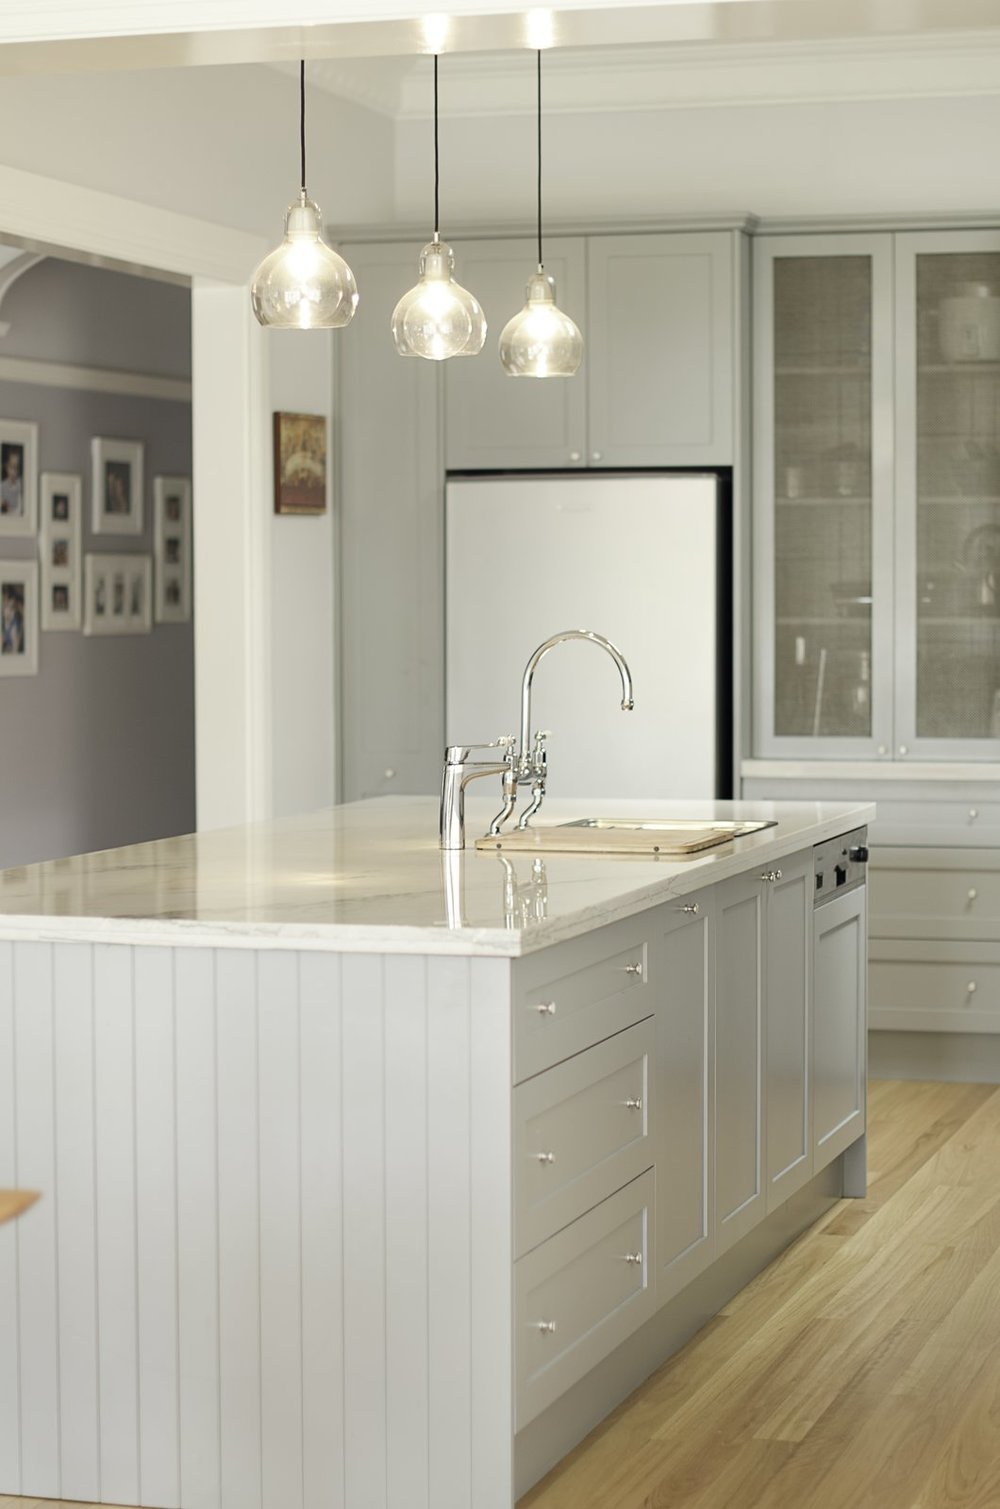 "This ""Kensington kitchen"" was designed by Nadia Hursky for Blue Tea Kitchens.  Courtesy of Pablo Hiriyogen"